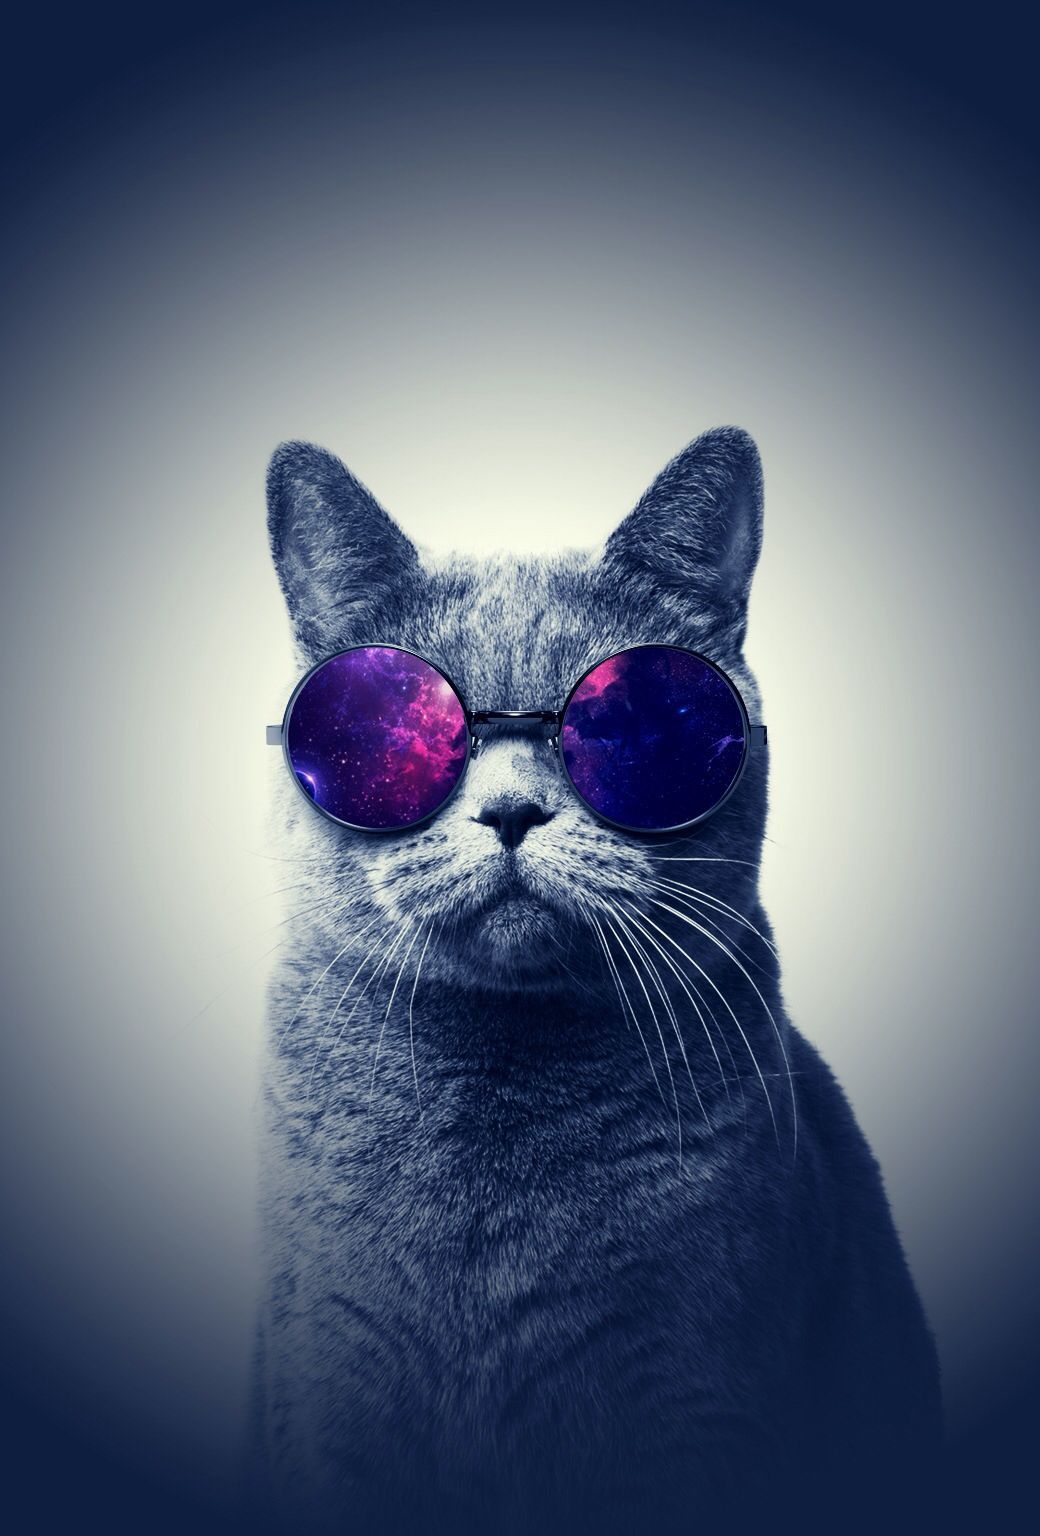 1040x1536 Cool cat | HomePage | Pinterest | Mobile wallpaper and Wallpaper